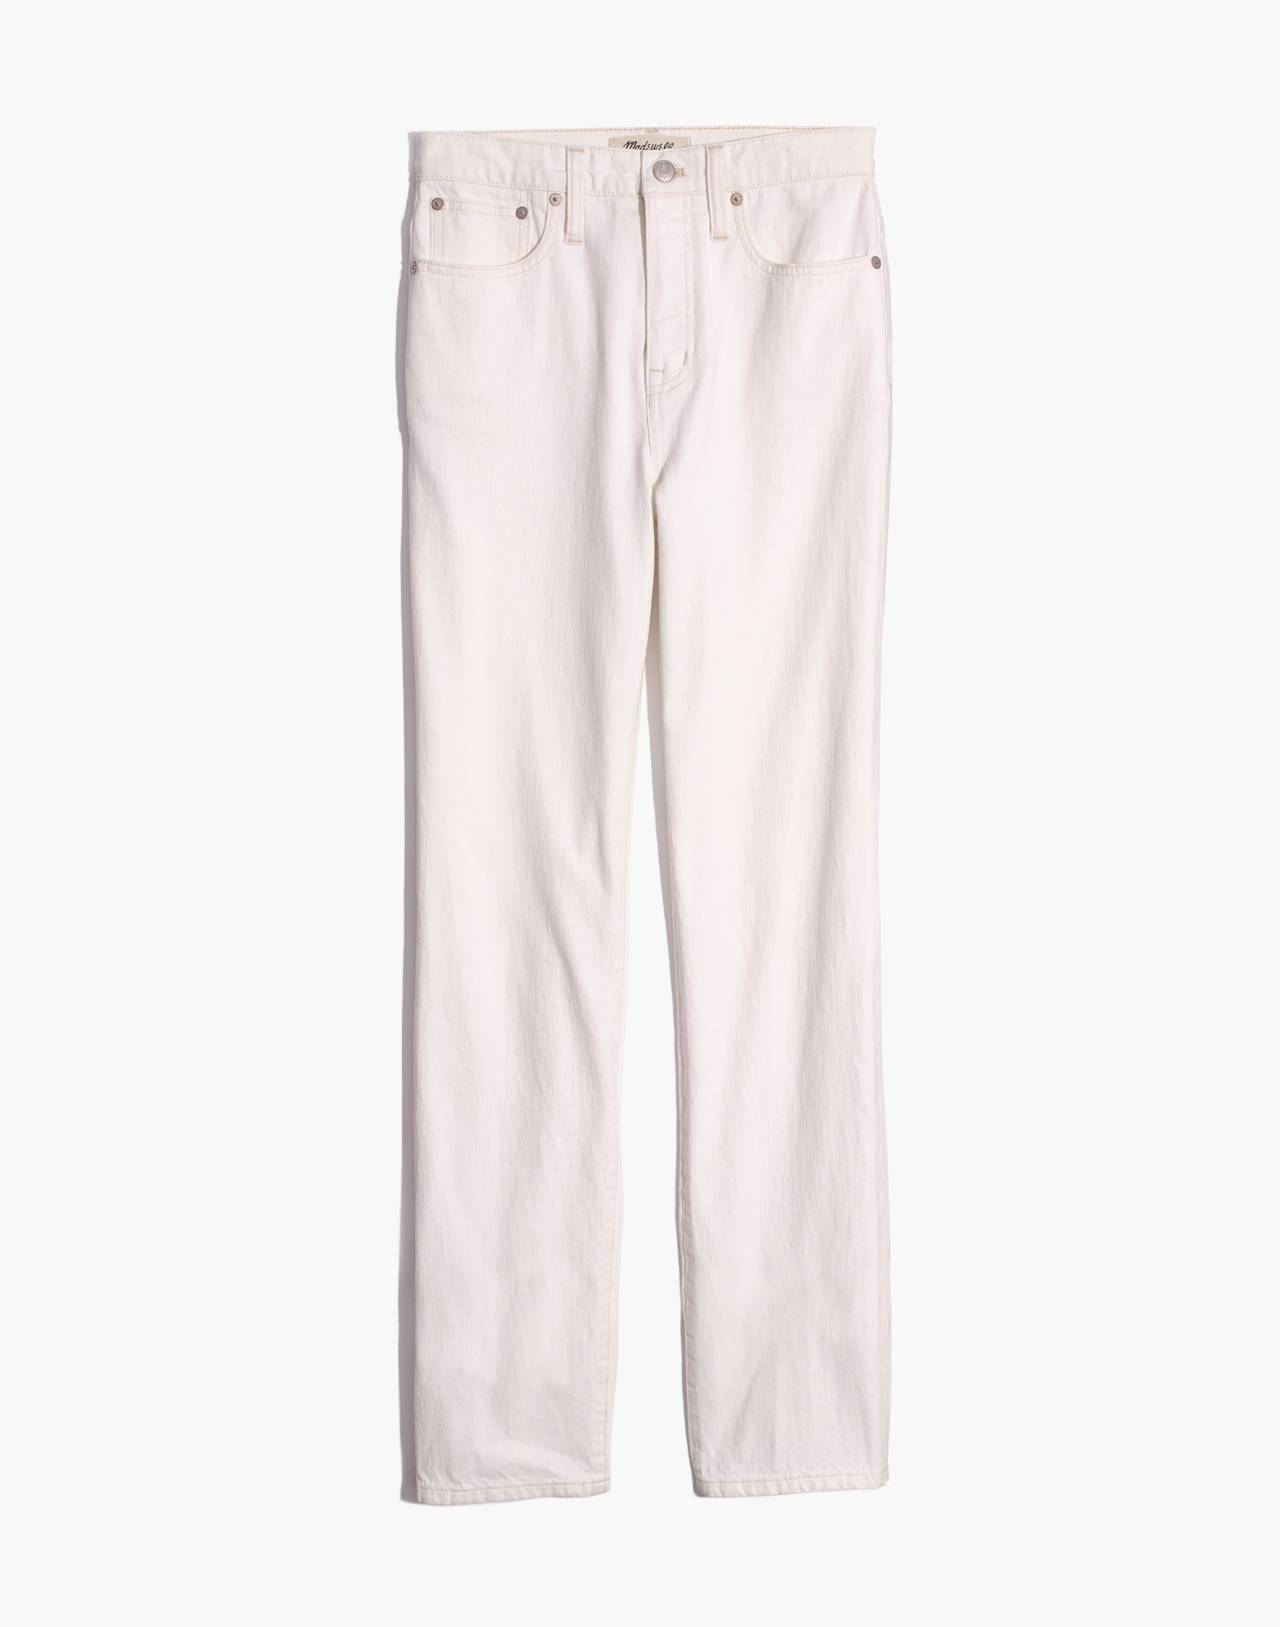 Classic Straight Jeans in Tile White in tile white image 4